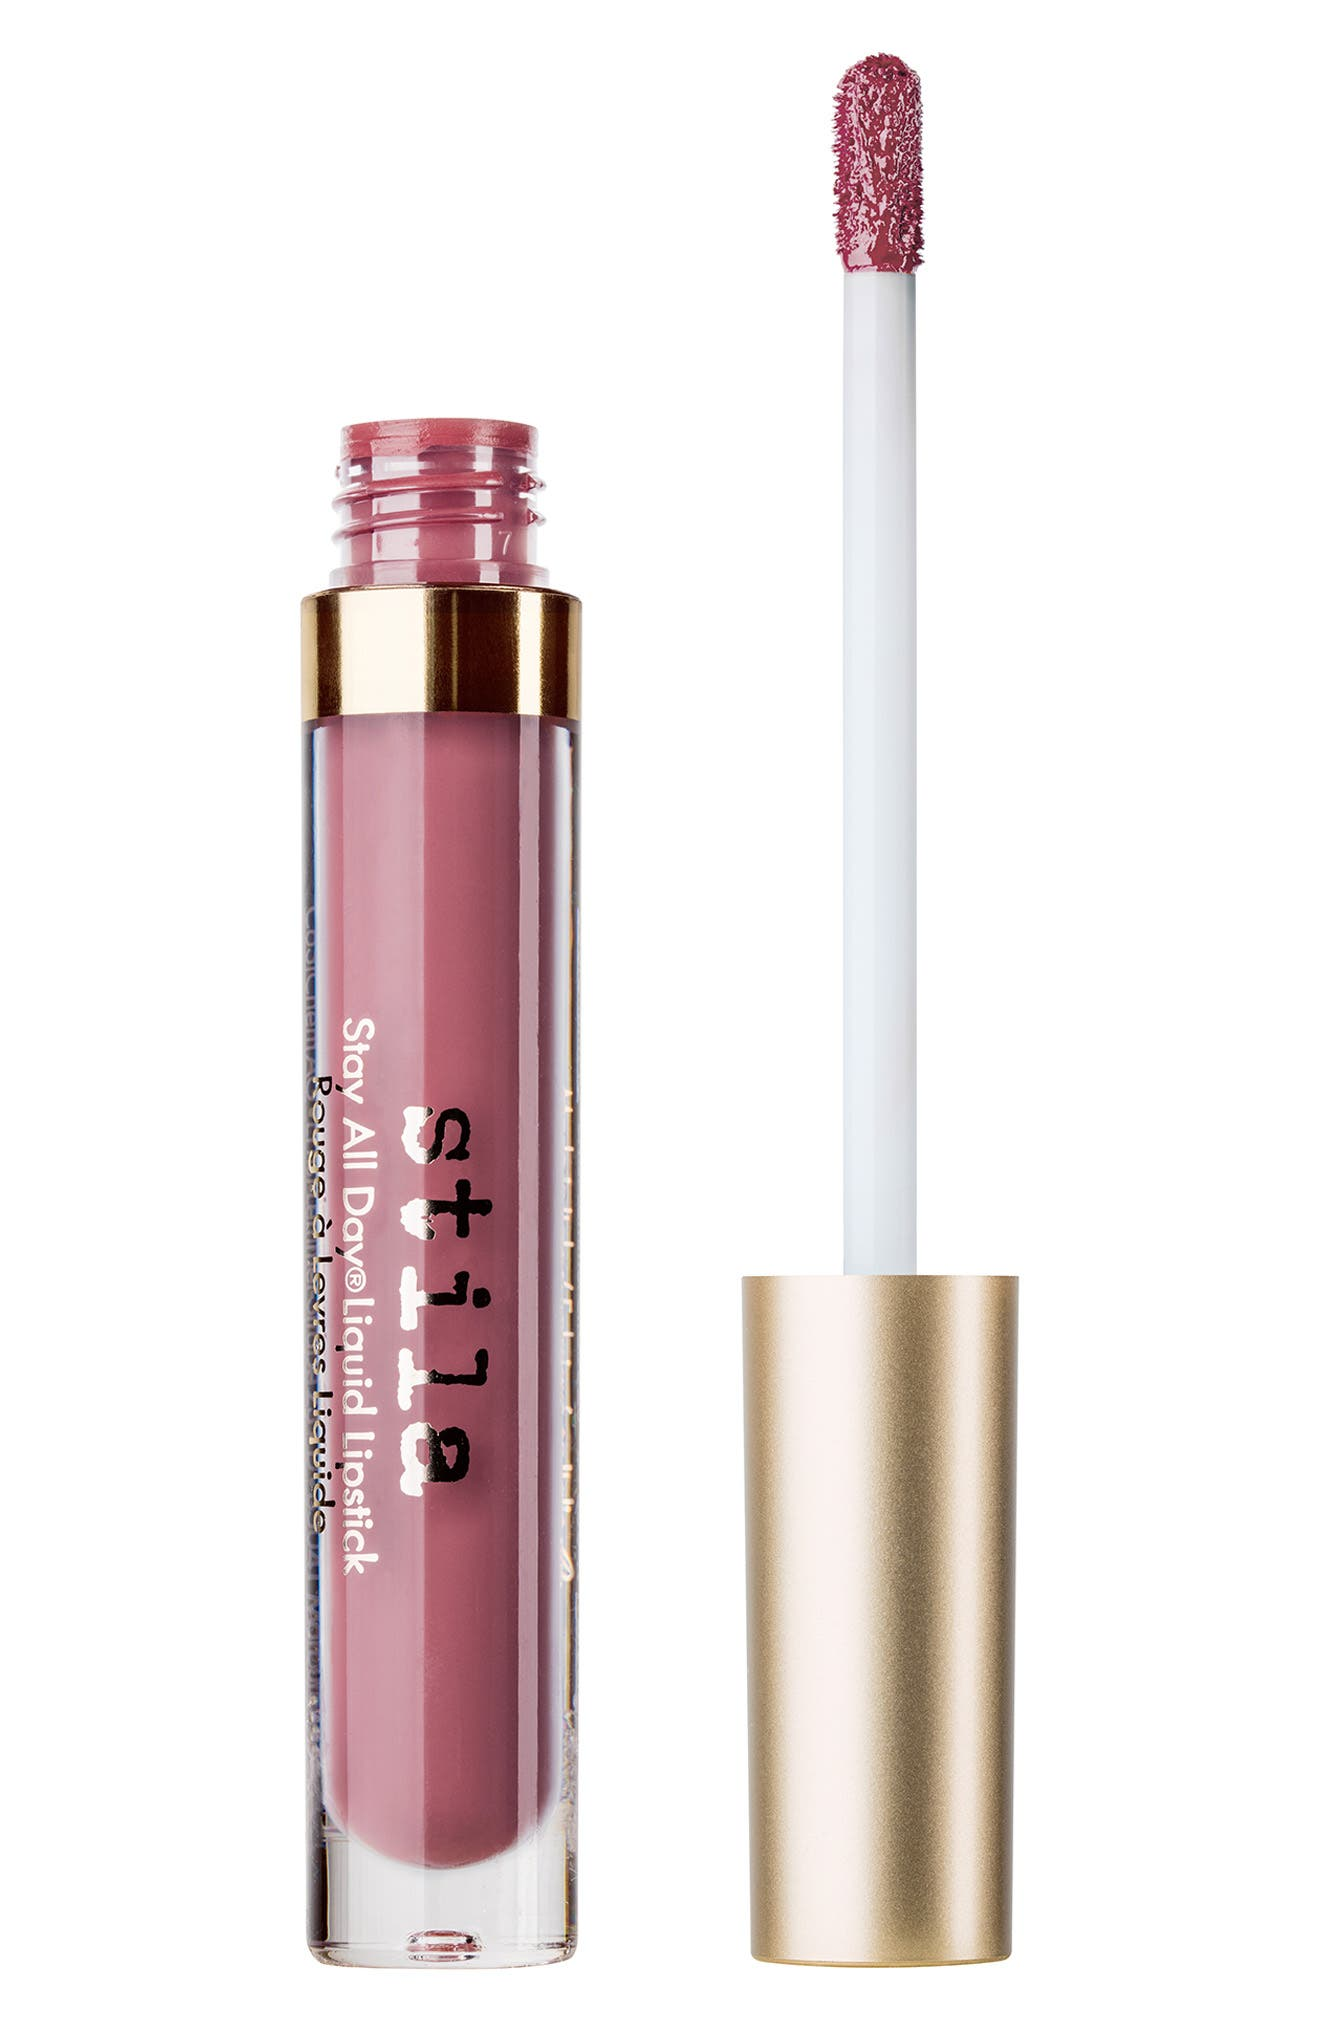 Image of Stila Stay All Day Liquid Lipstick - Verona